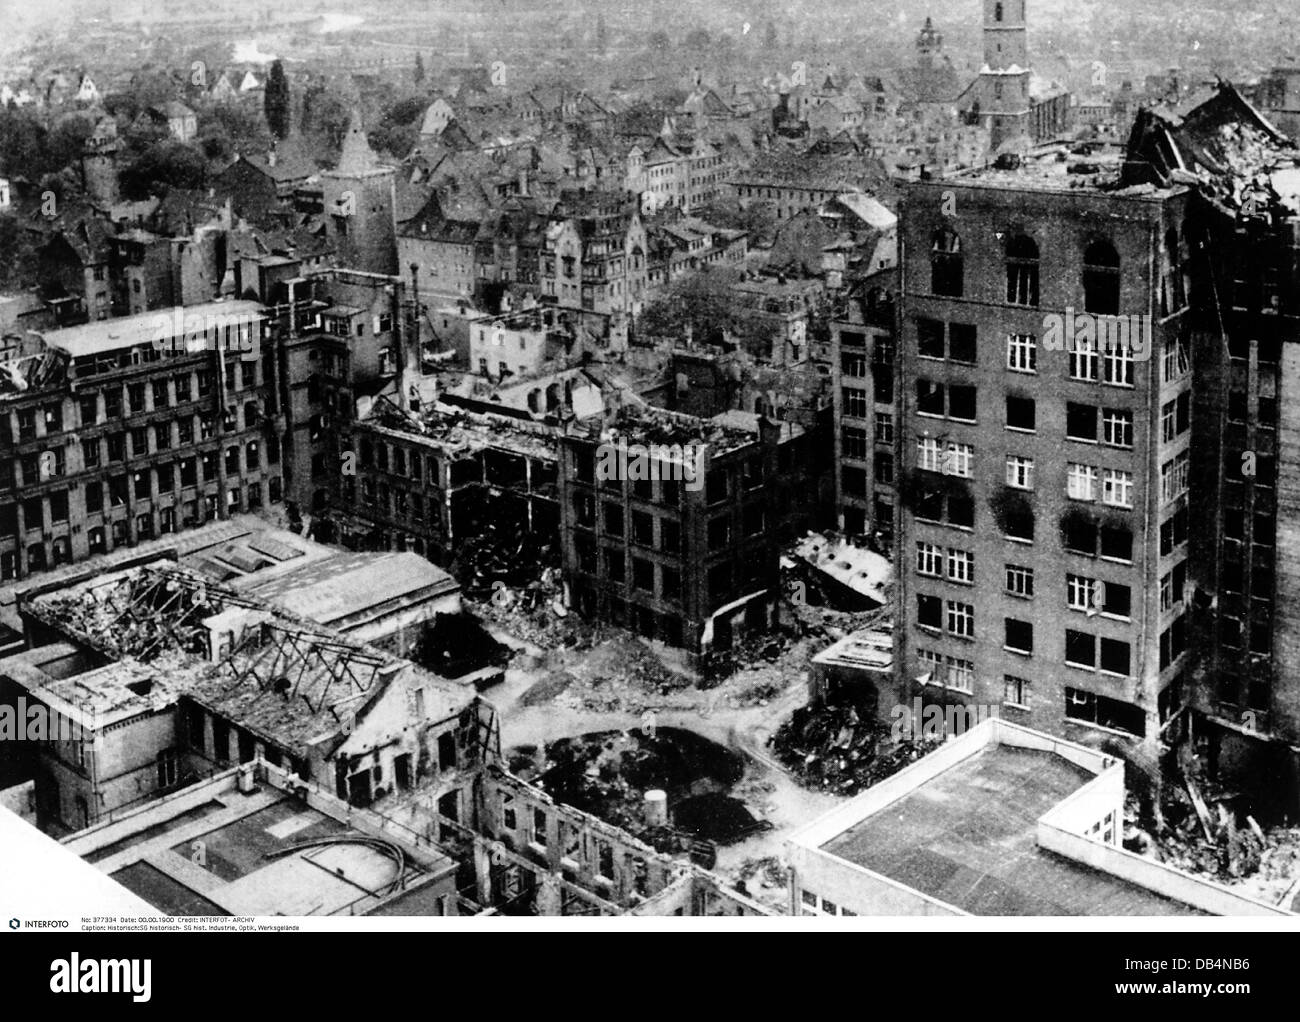 industry, optics, factory premises, Carl Zeiss GmbH, Jena, destroyed buildings after the bomb attack, 19.3.1945, - Stock Image